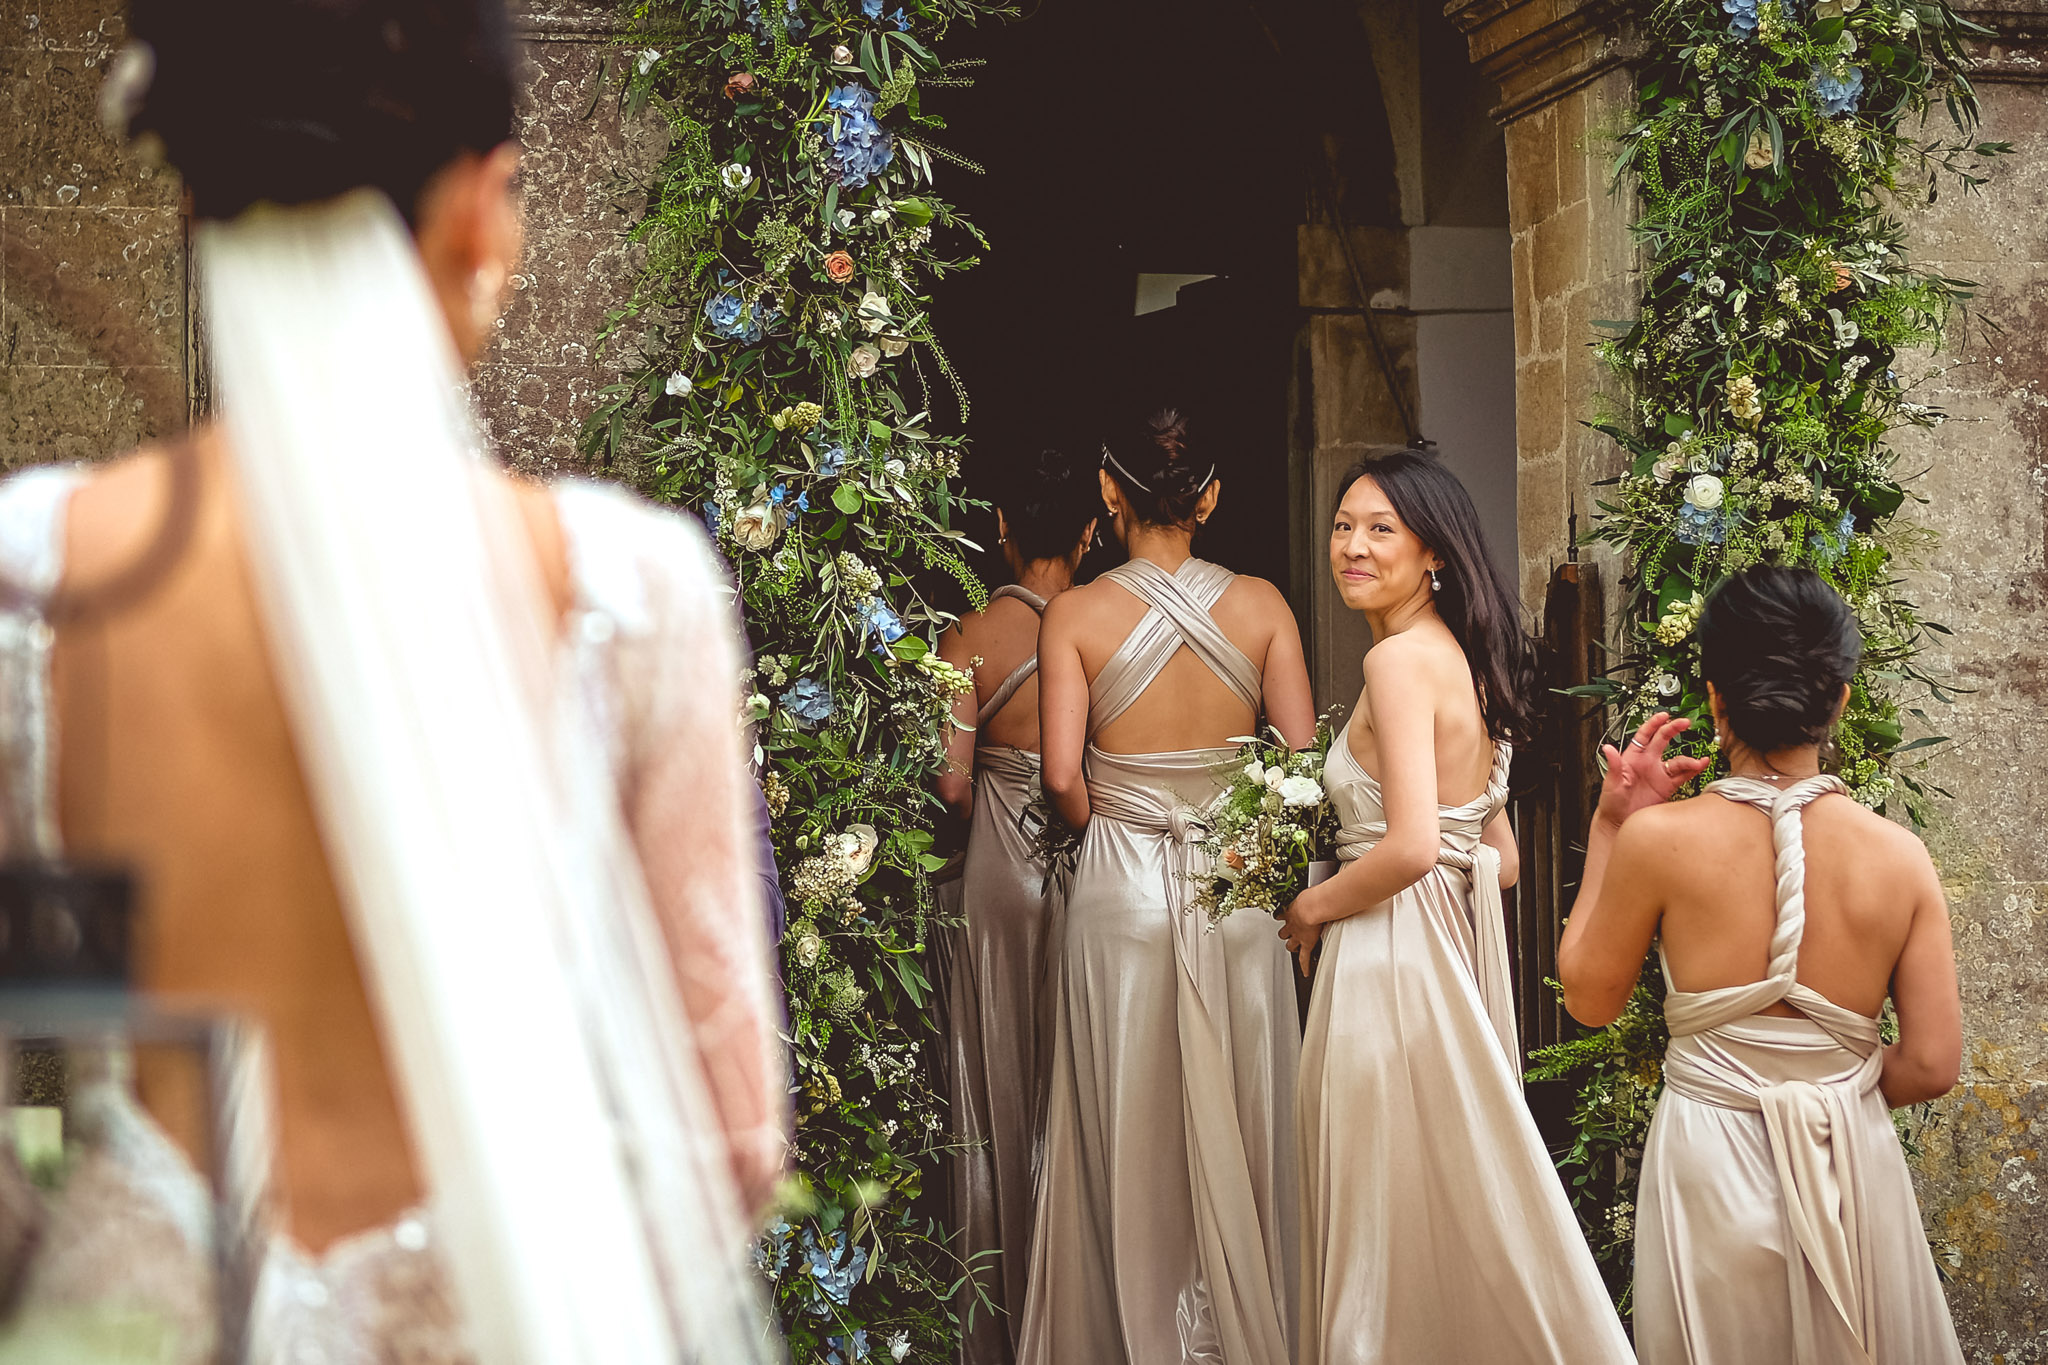 Bridesmaid ooks back at bride from processional - photo by Andrew Billington Photography